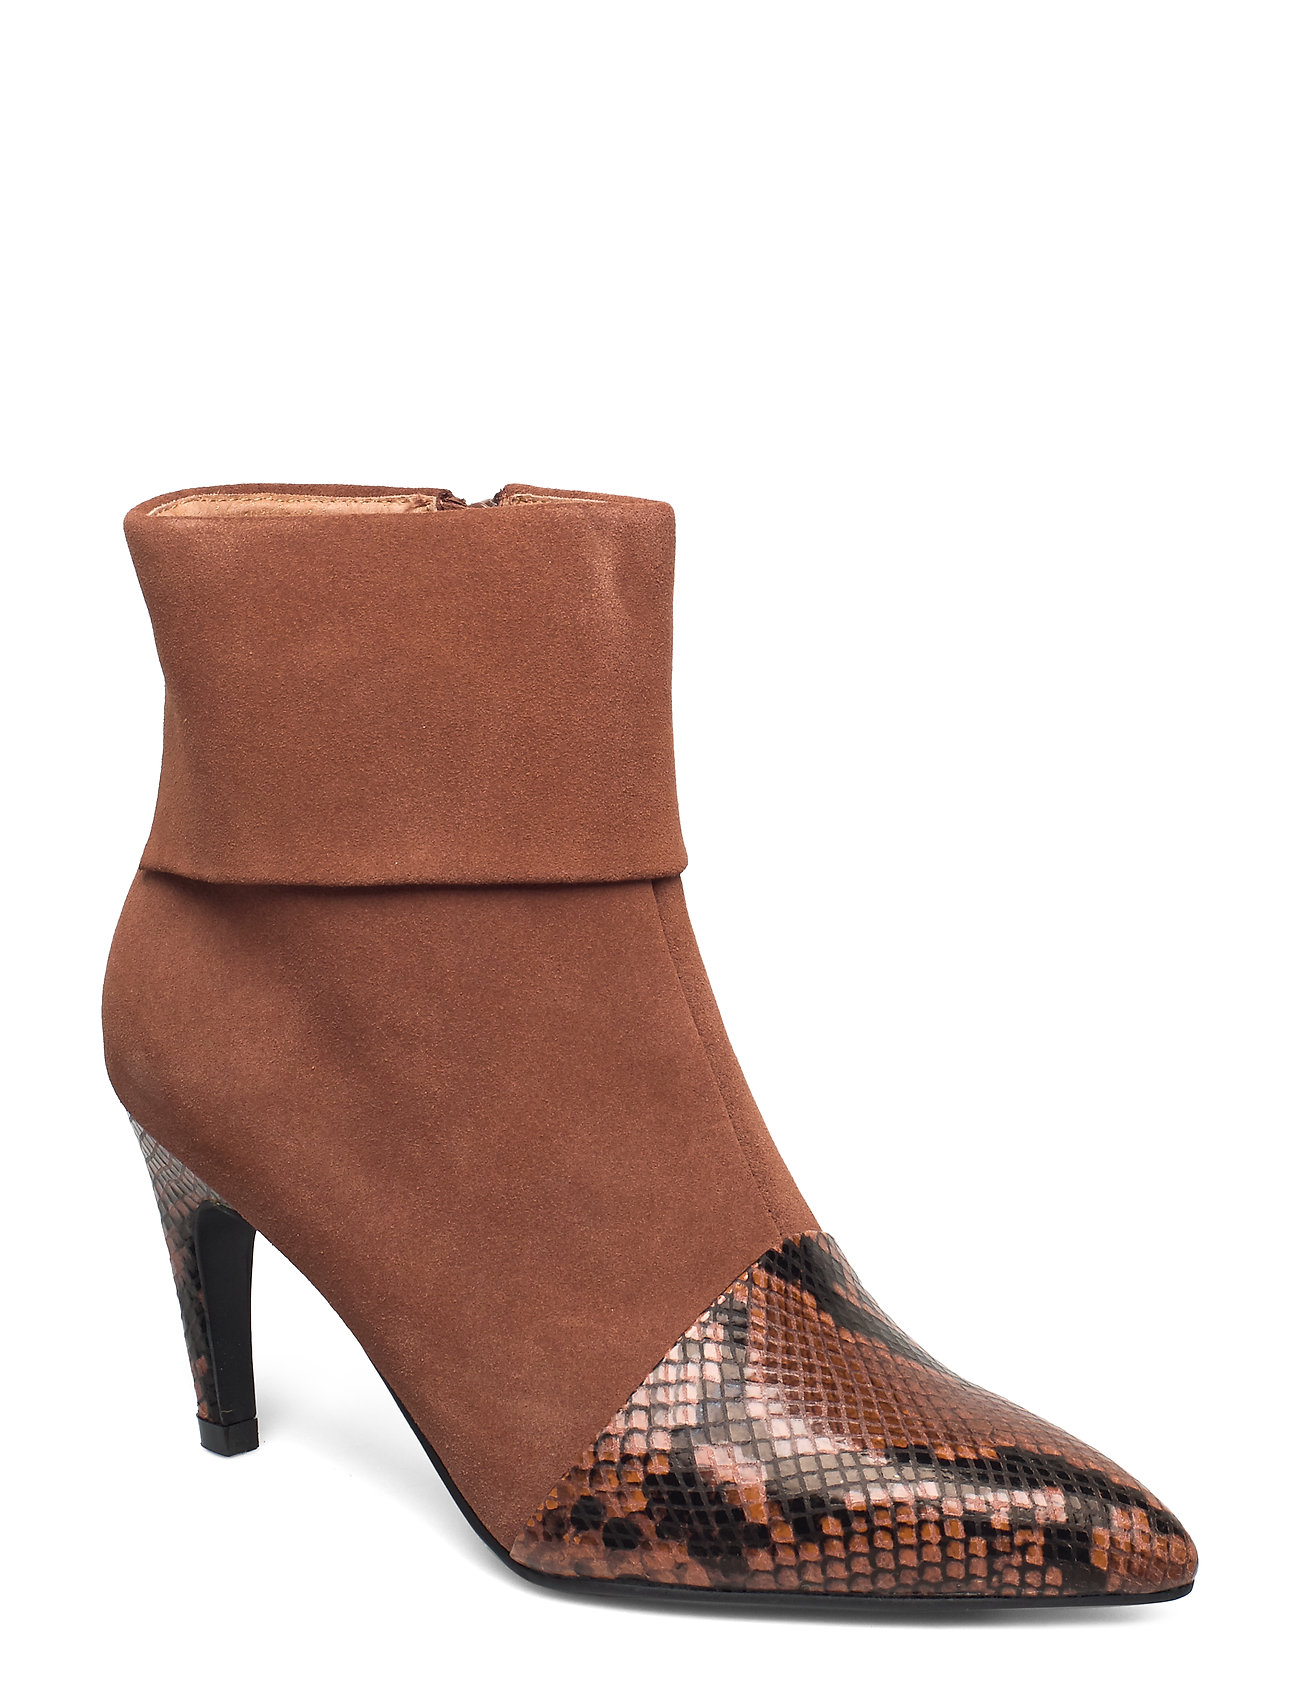 Image of Vanessa Fold Down Shoes Boots Ankle Boots Ankle Boot - Heel Brun Shoe The Bear (3406190581)